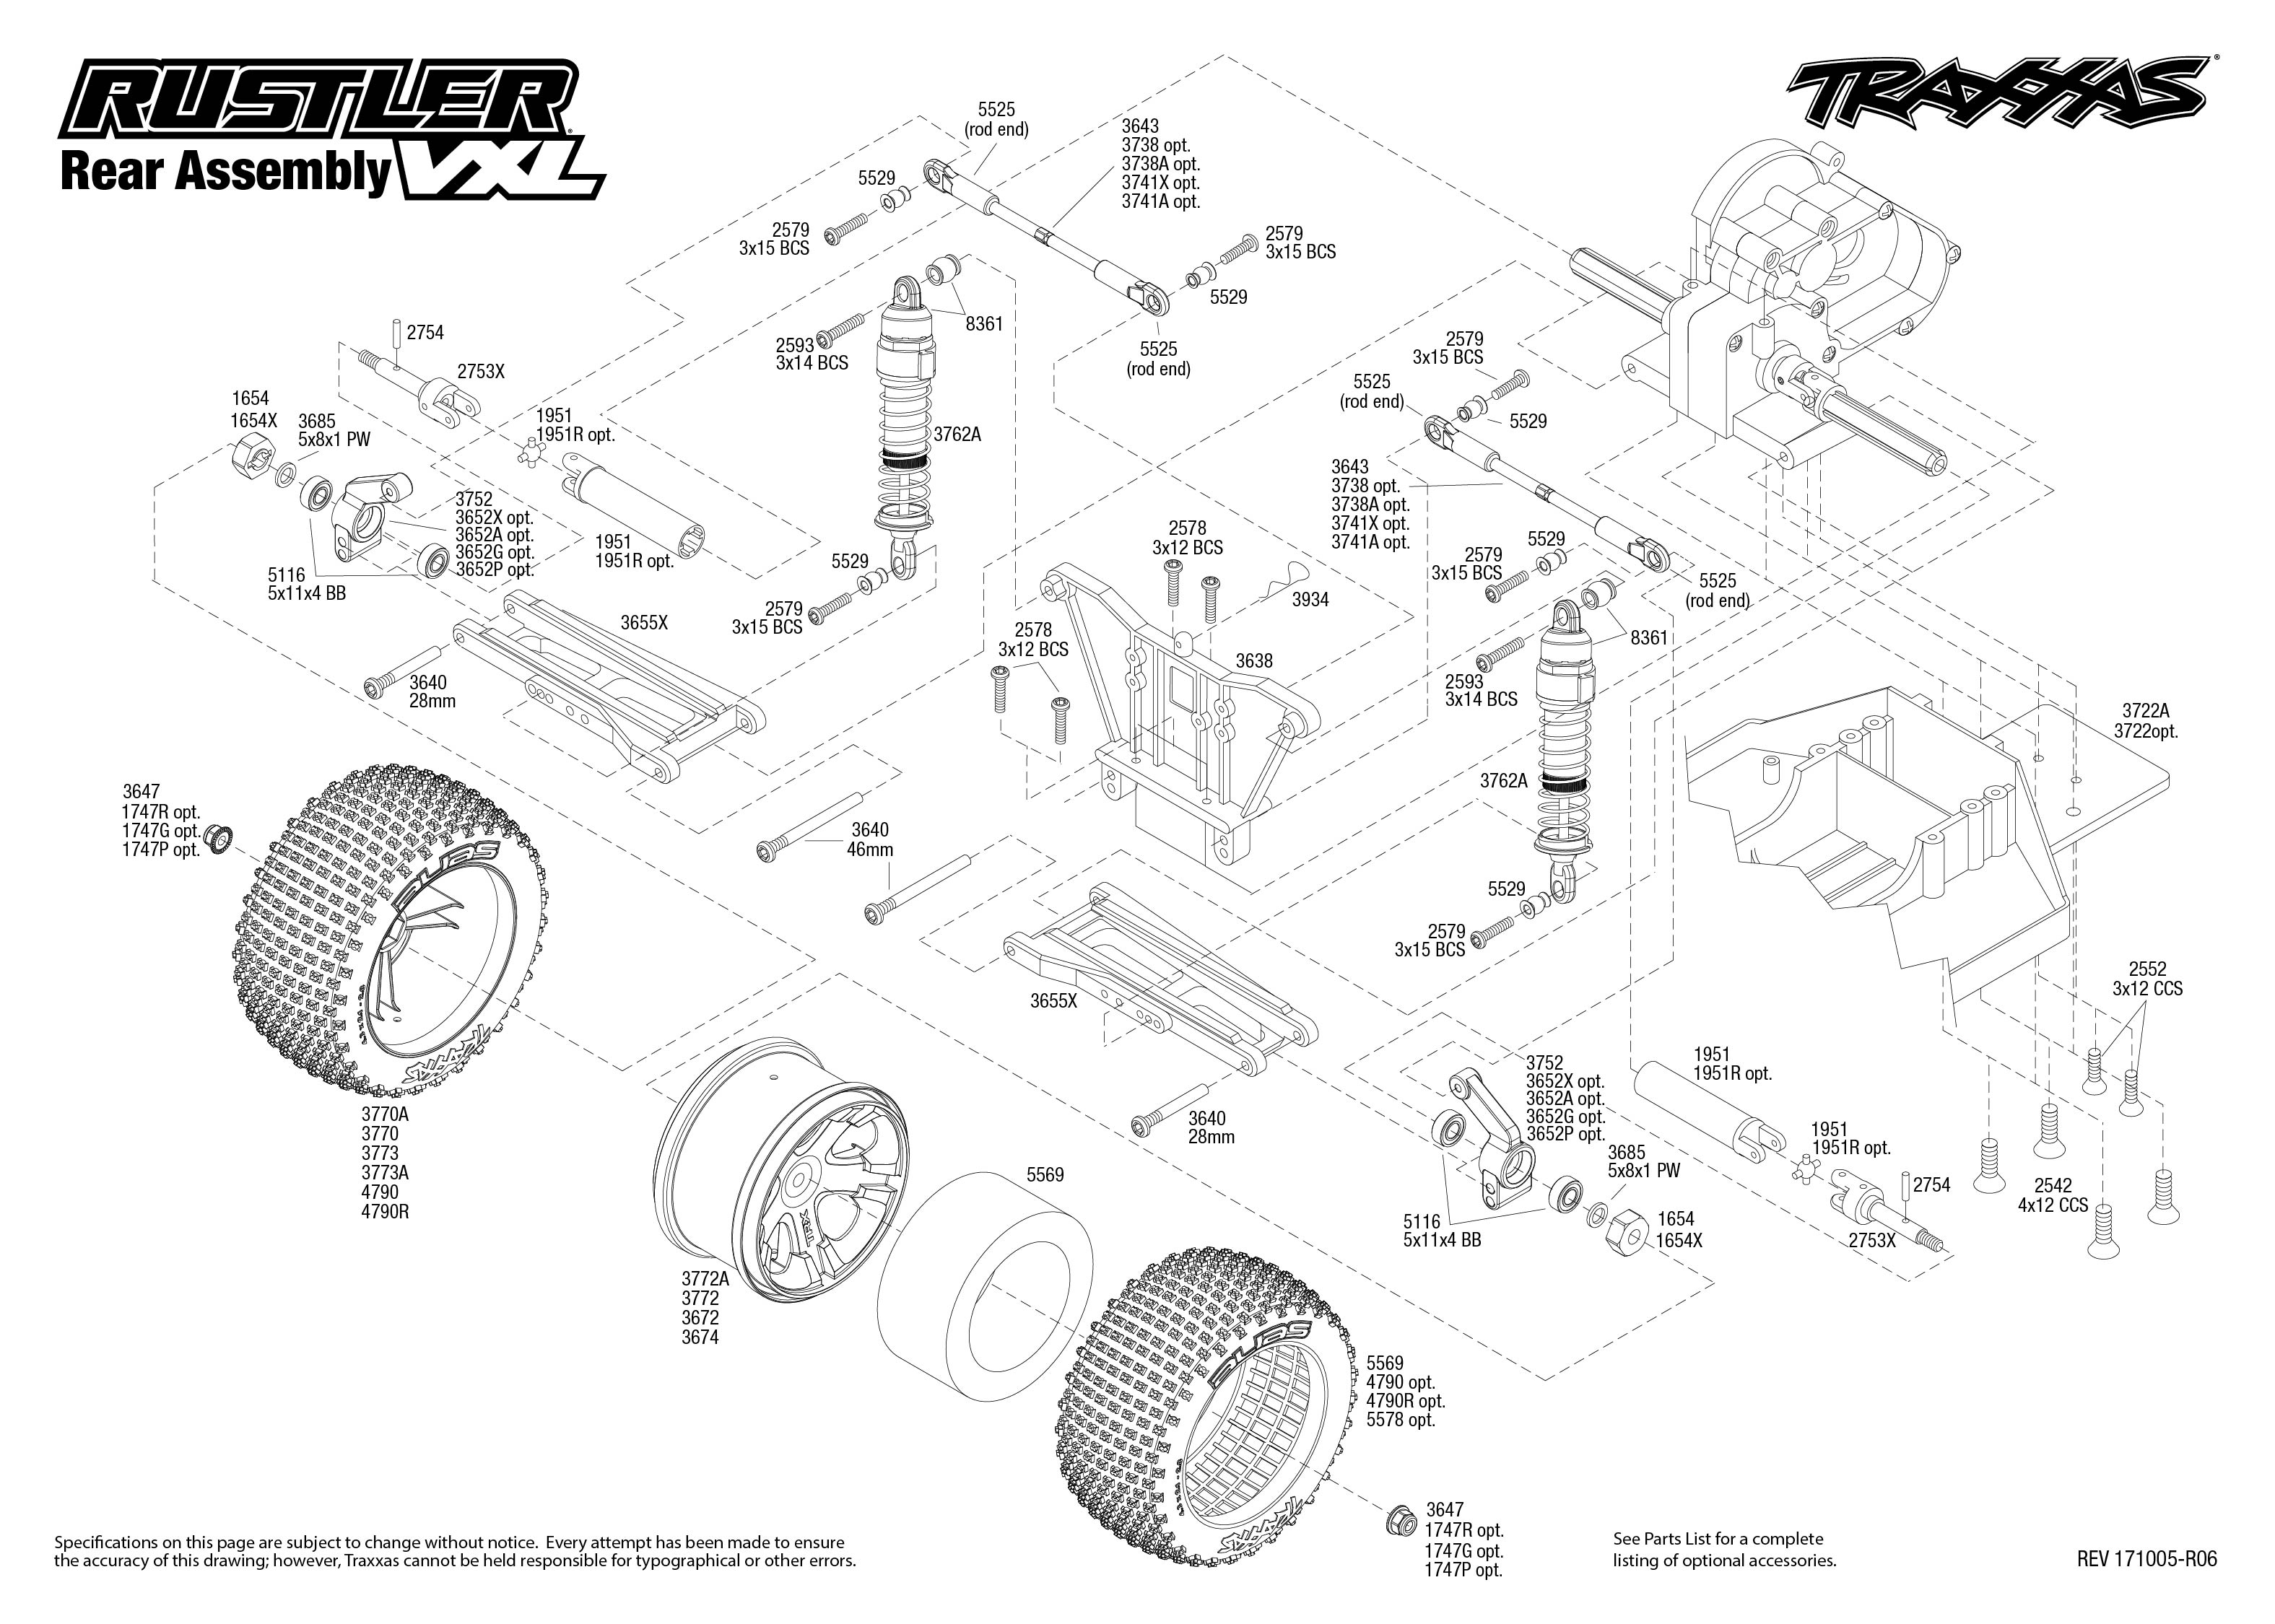 Traxxas Rustler 2wd Transmission Parts Diagram Great Design Of M Audio Bx5a Circuit Data U2022 Rh 45 63 21 231 Manual